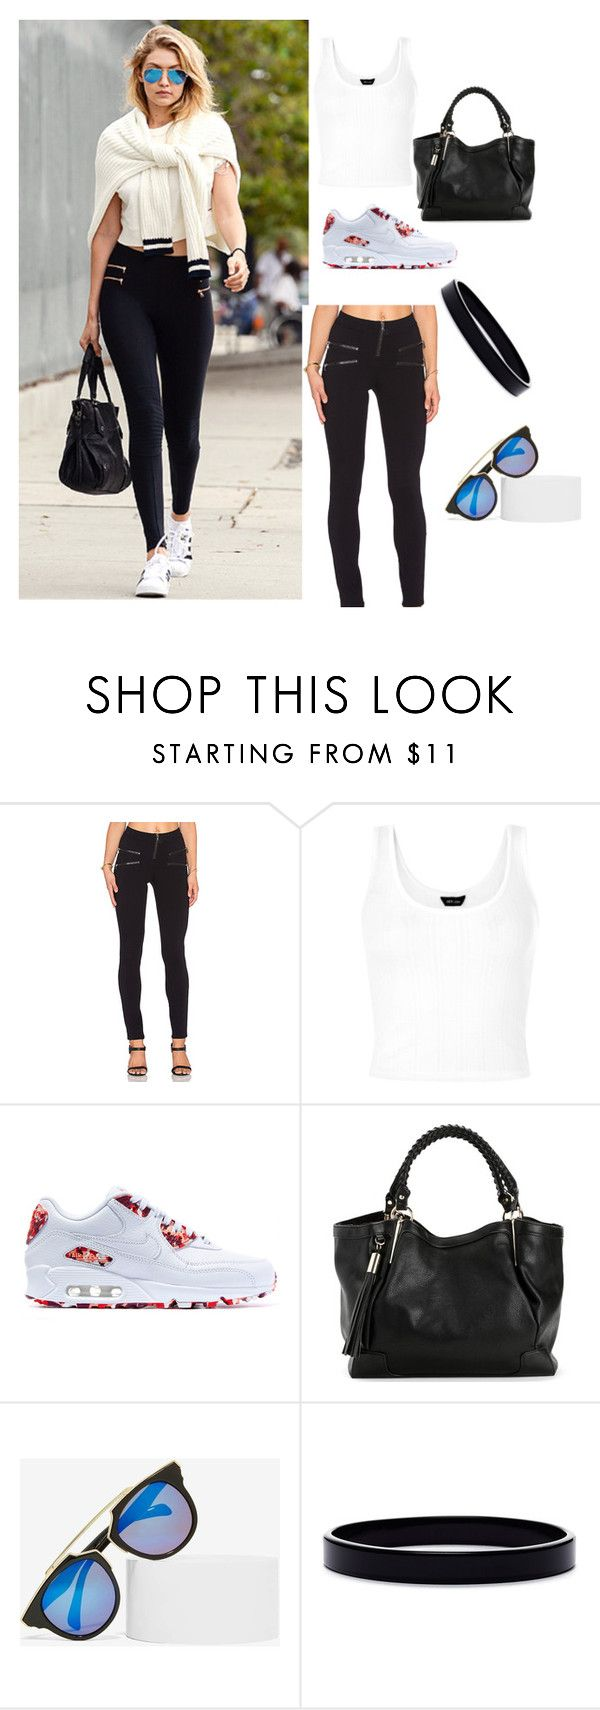 Untitled #264 by sparkle-4 on Polyvore featuring Twenty, NIKE, L. Erickson and Lucent